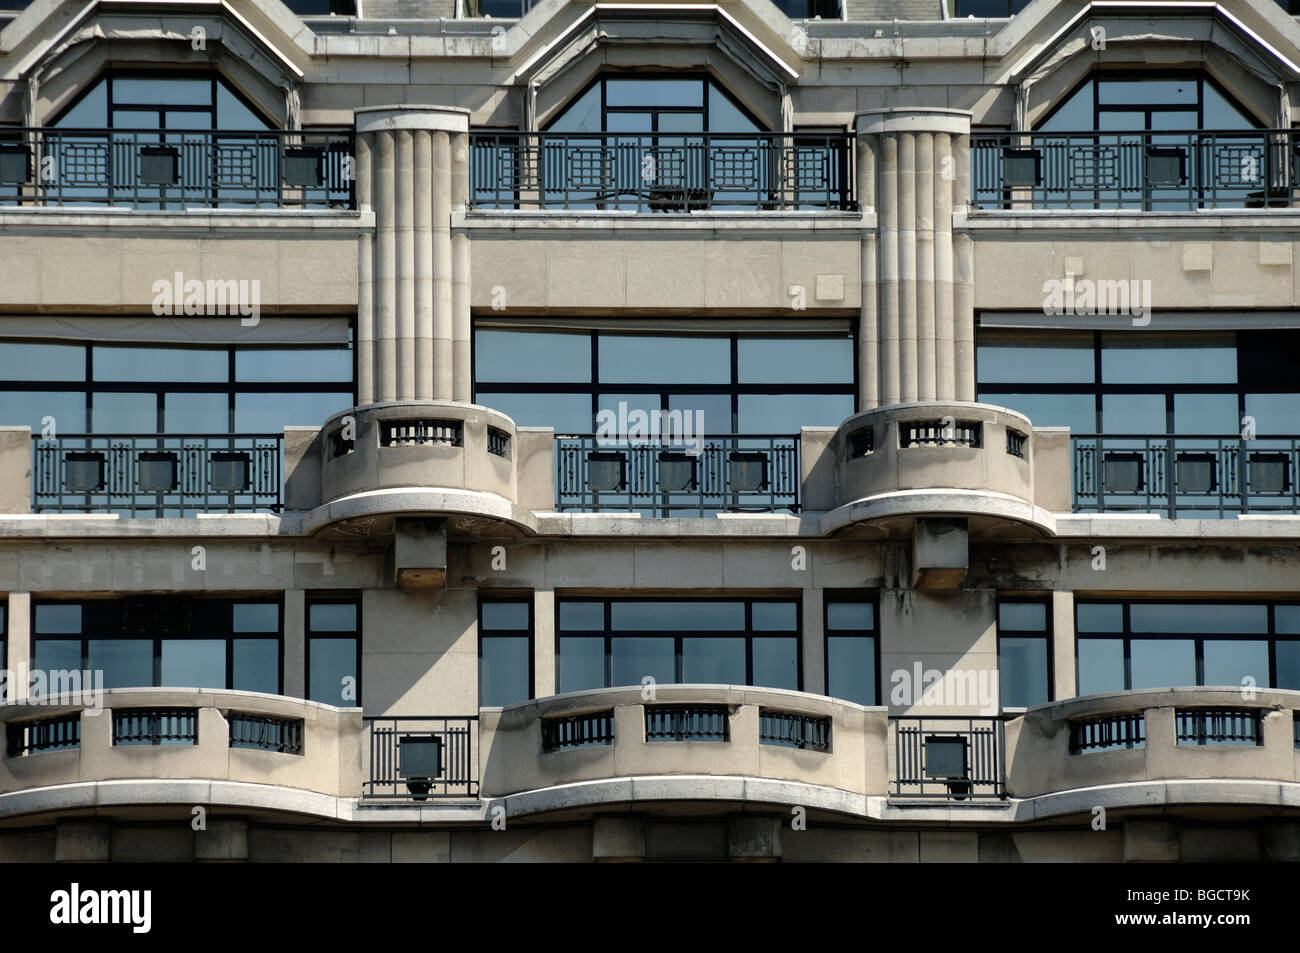 Arts Deco Paris Art Deco Balconies Facade Of La Samaritaine Department Store